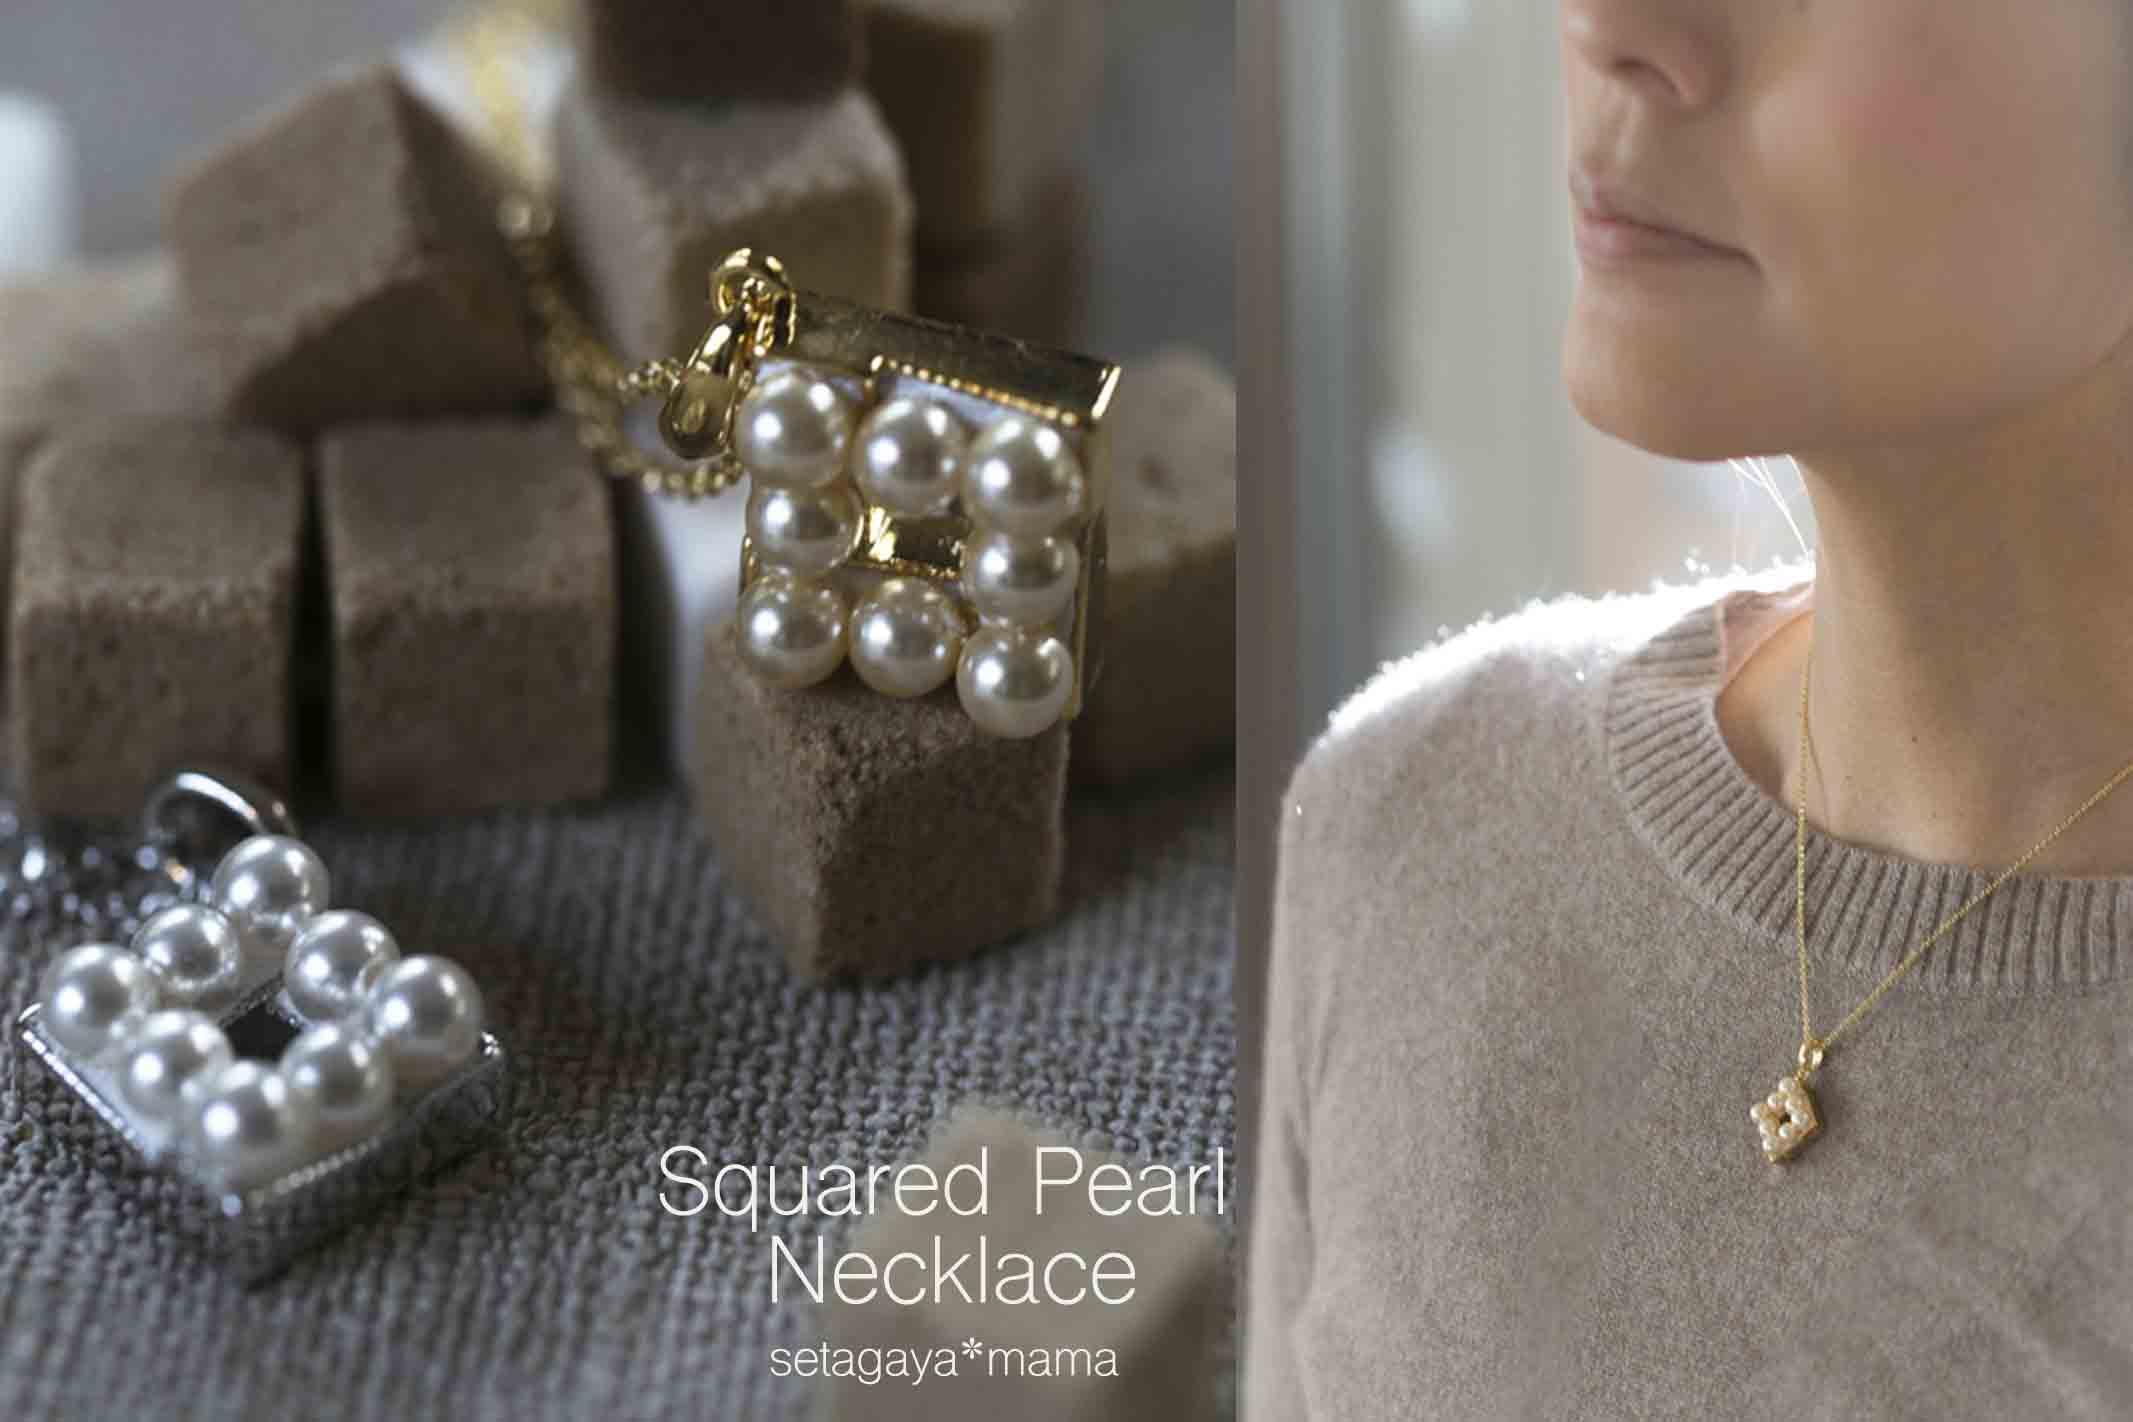 Squared pearl neck